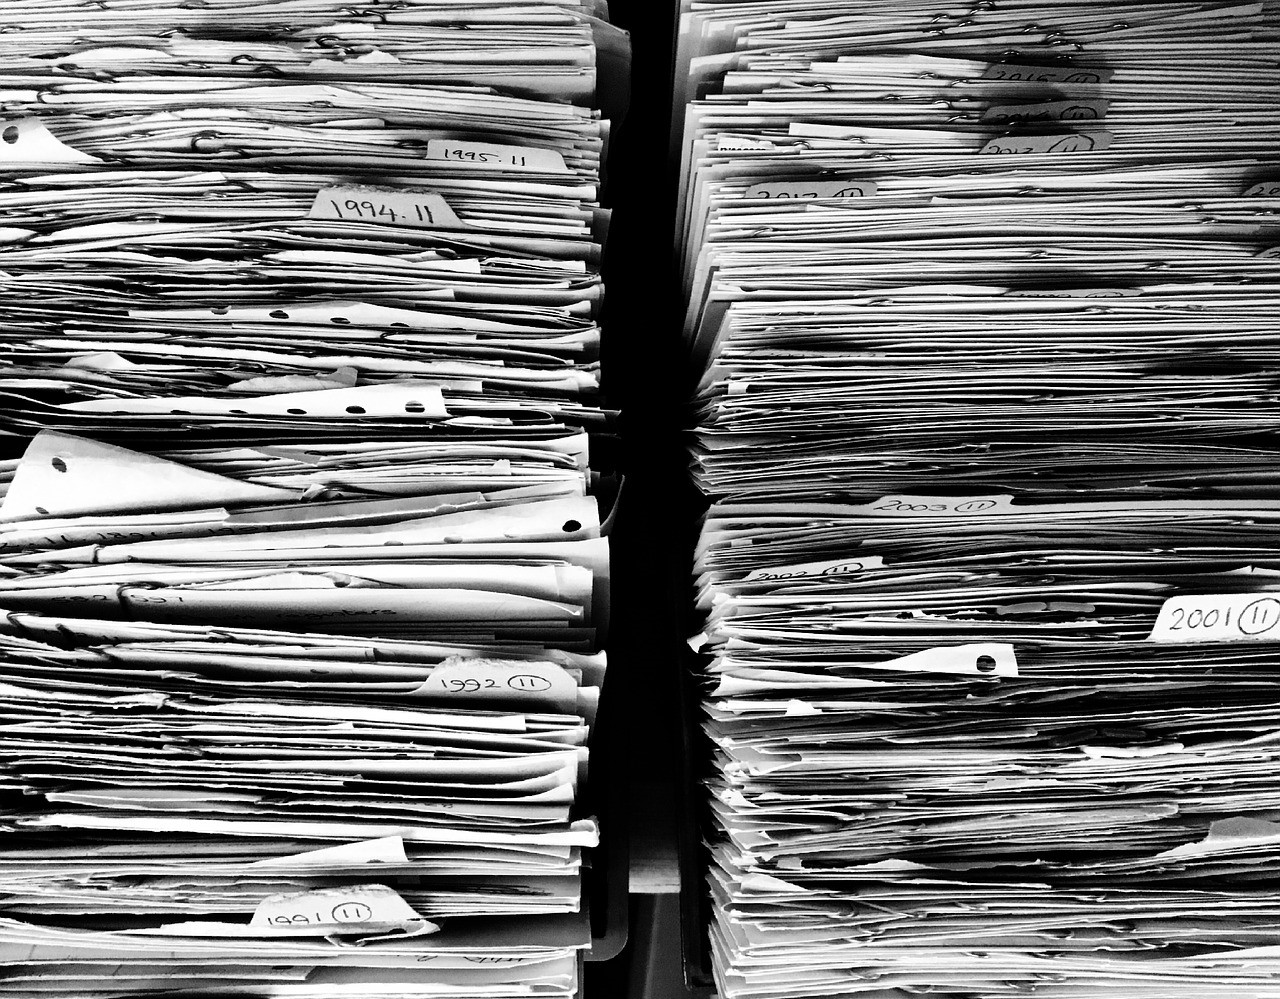 paperwork, tasks, piles of paper